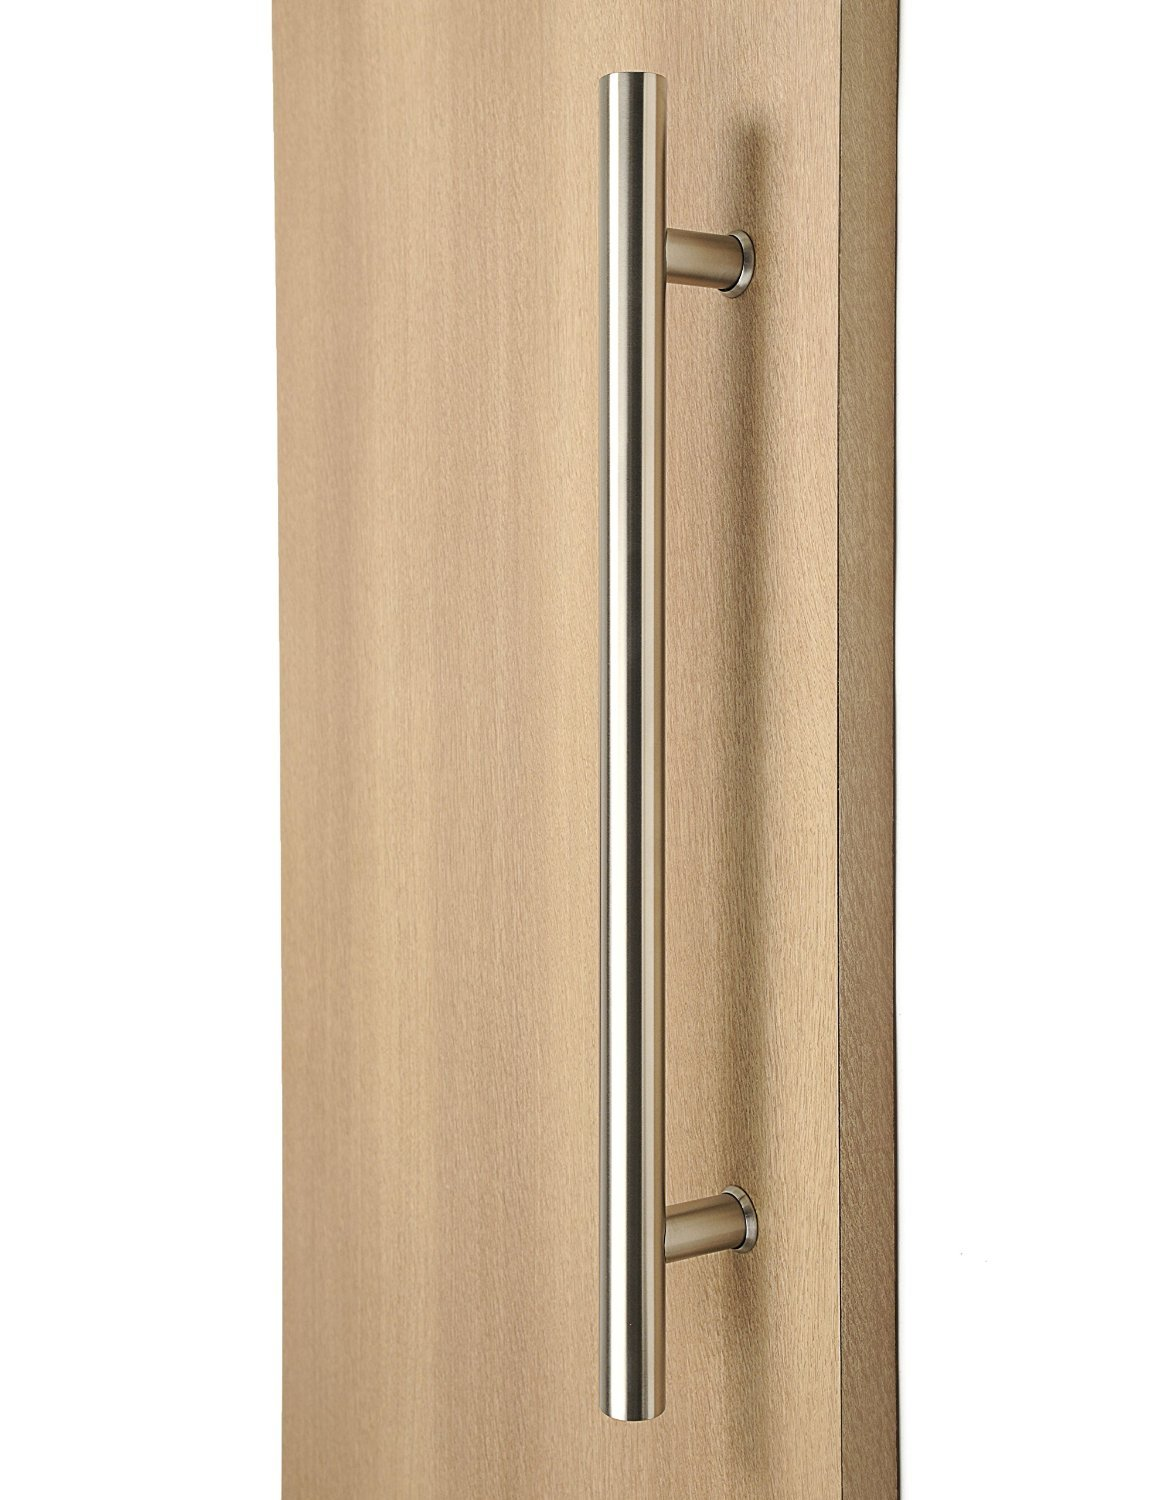 36 inch (900 mm) Door Pull Handle / Back to Back / Satin Finish / Commercial / Residential / 304 Grade Stainless Steel / Ladder Style (Handle Diameter: 1 inch / 25 mm)